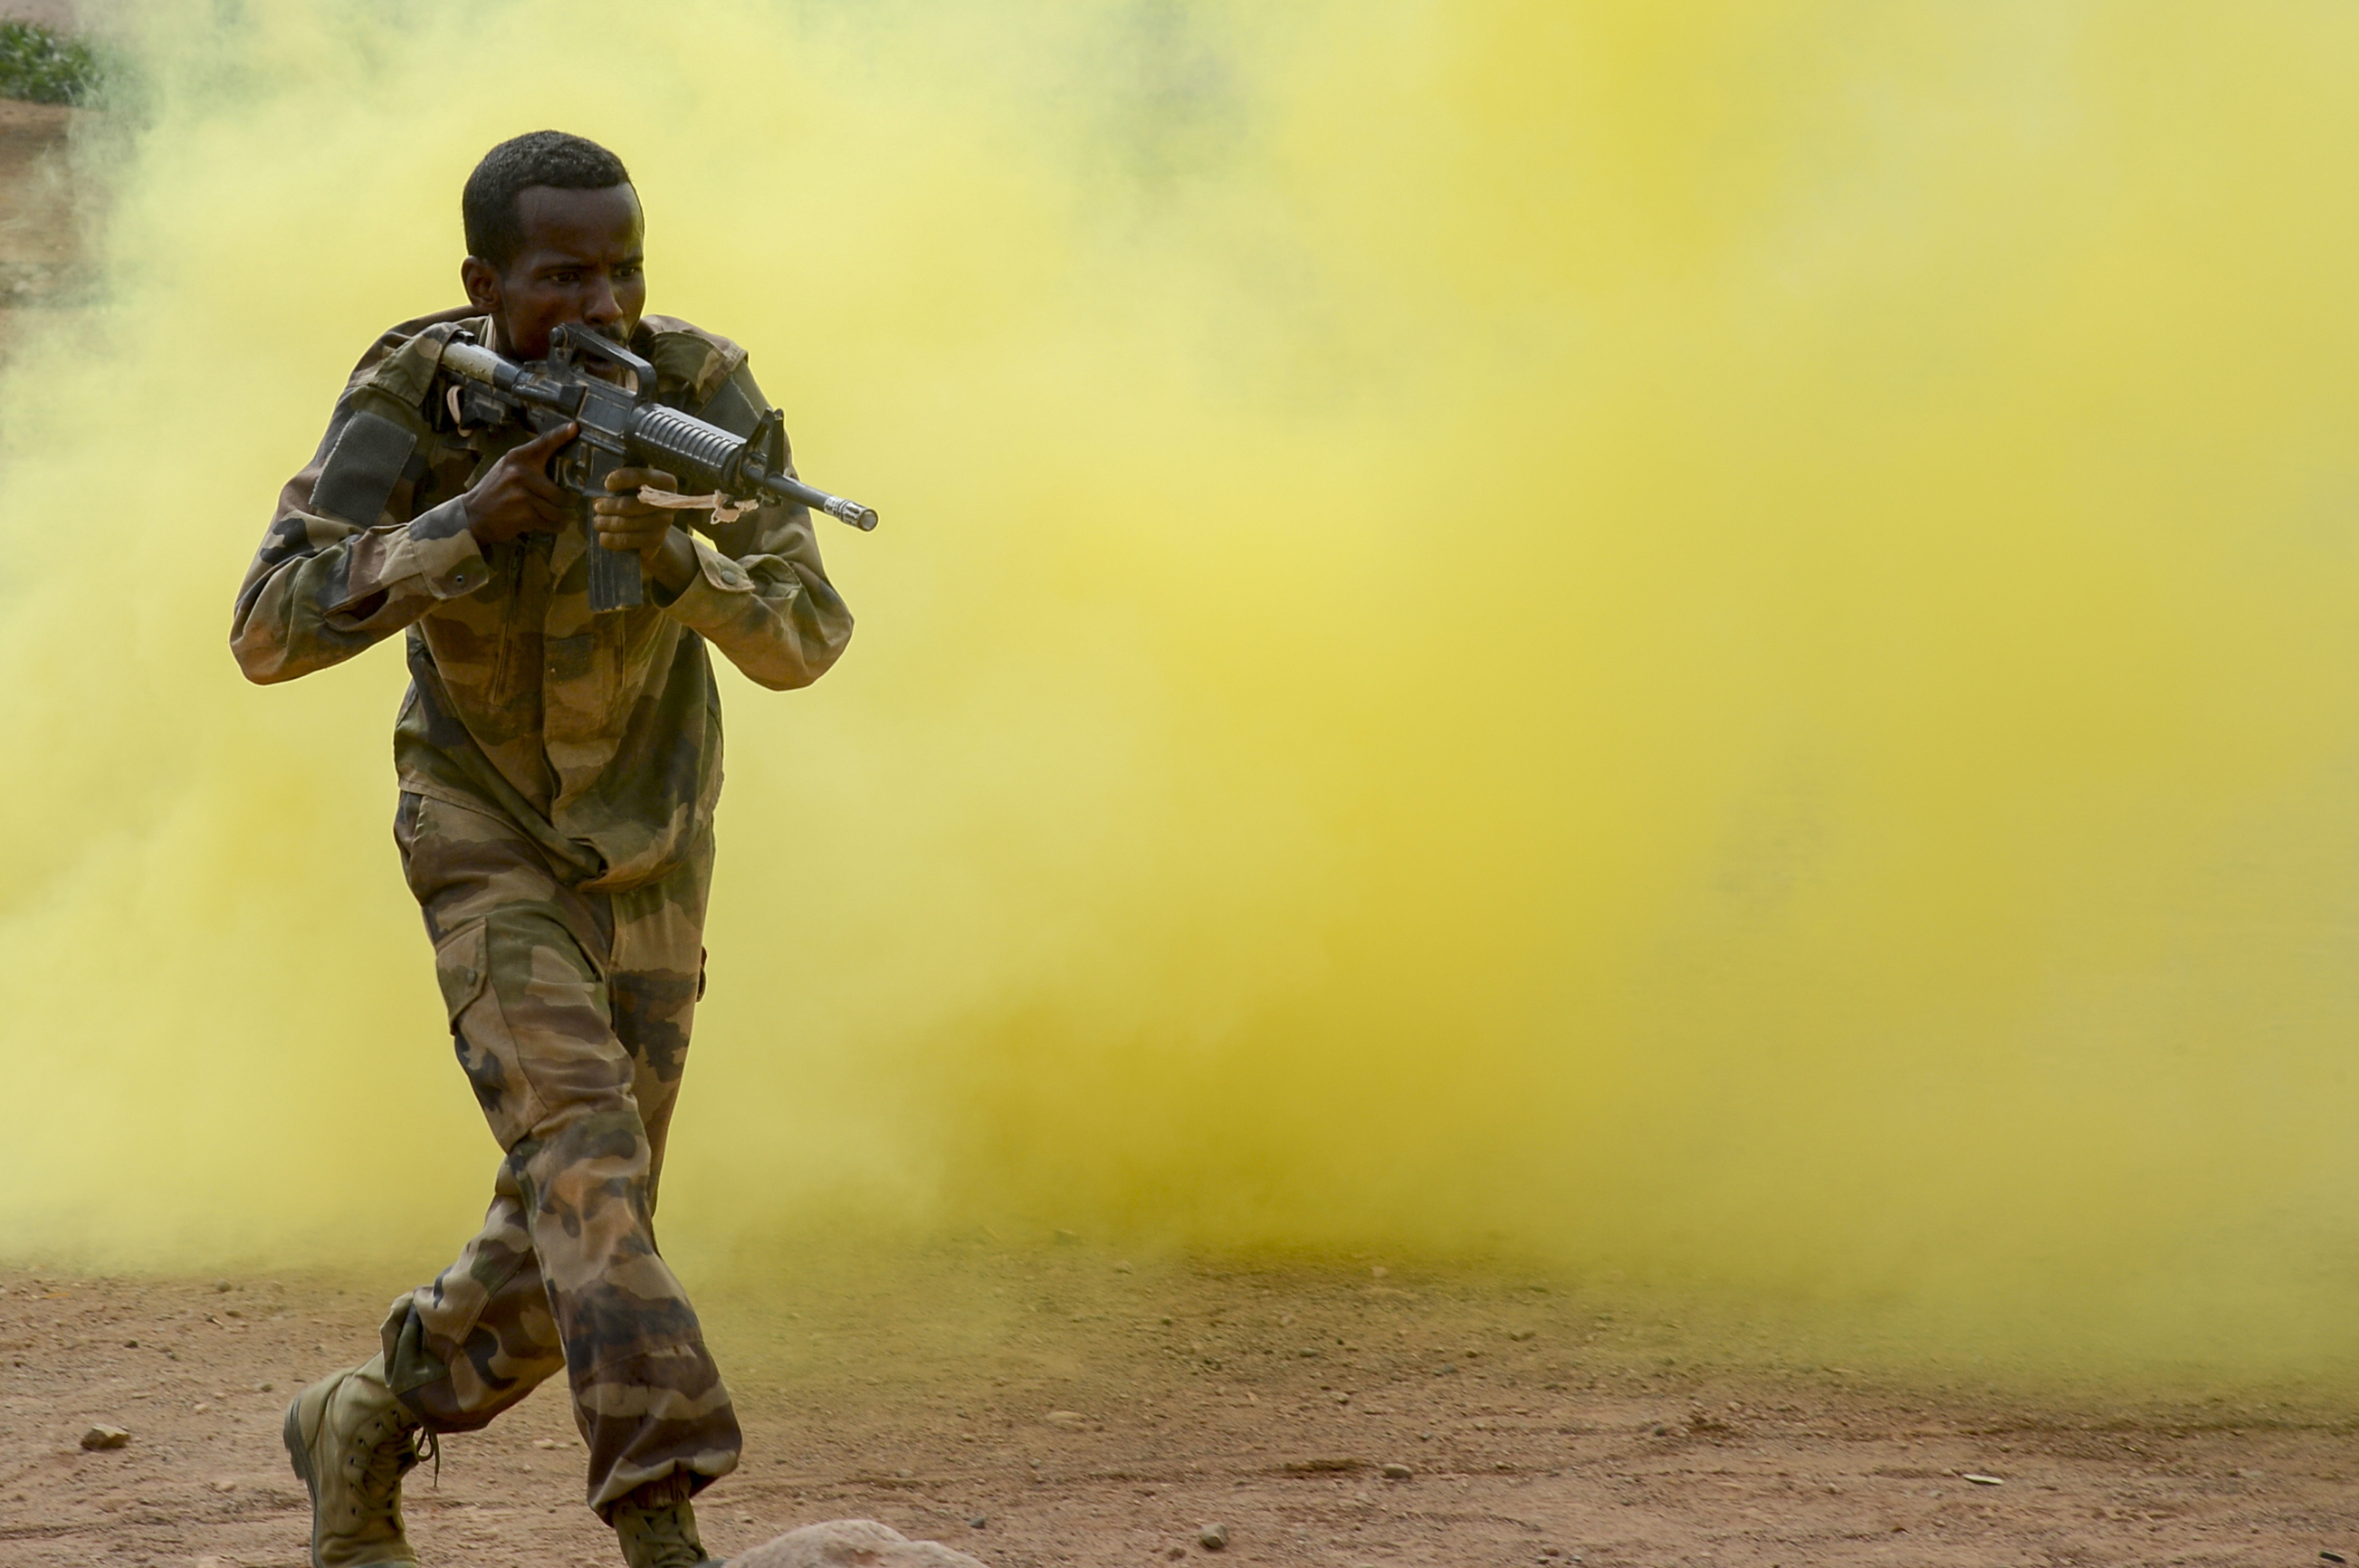 A Djiboutian soldier reacts to simulated contact during the culminating exercise of a five-week training cycle for the newly formed Rapid Intervention Battalion (RIB), a Djiboutian army crisis response unit, at a site outside Djibouti City, May 3, 2018.  U.S. Army Soldiers from Alpha Company, 3rd Battalion, 141st Infantry Regiment, Texas National Guard, assigned to Combined Joint Task Force- Horn of Africa conducted the RIB training. (U.S. Navy Photo by Mass Communication Specialist 2nd Class Timothy M. Ahearn)